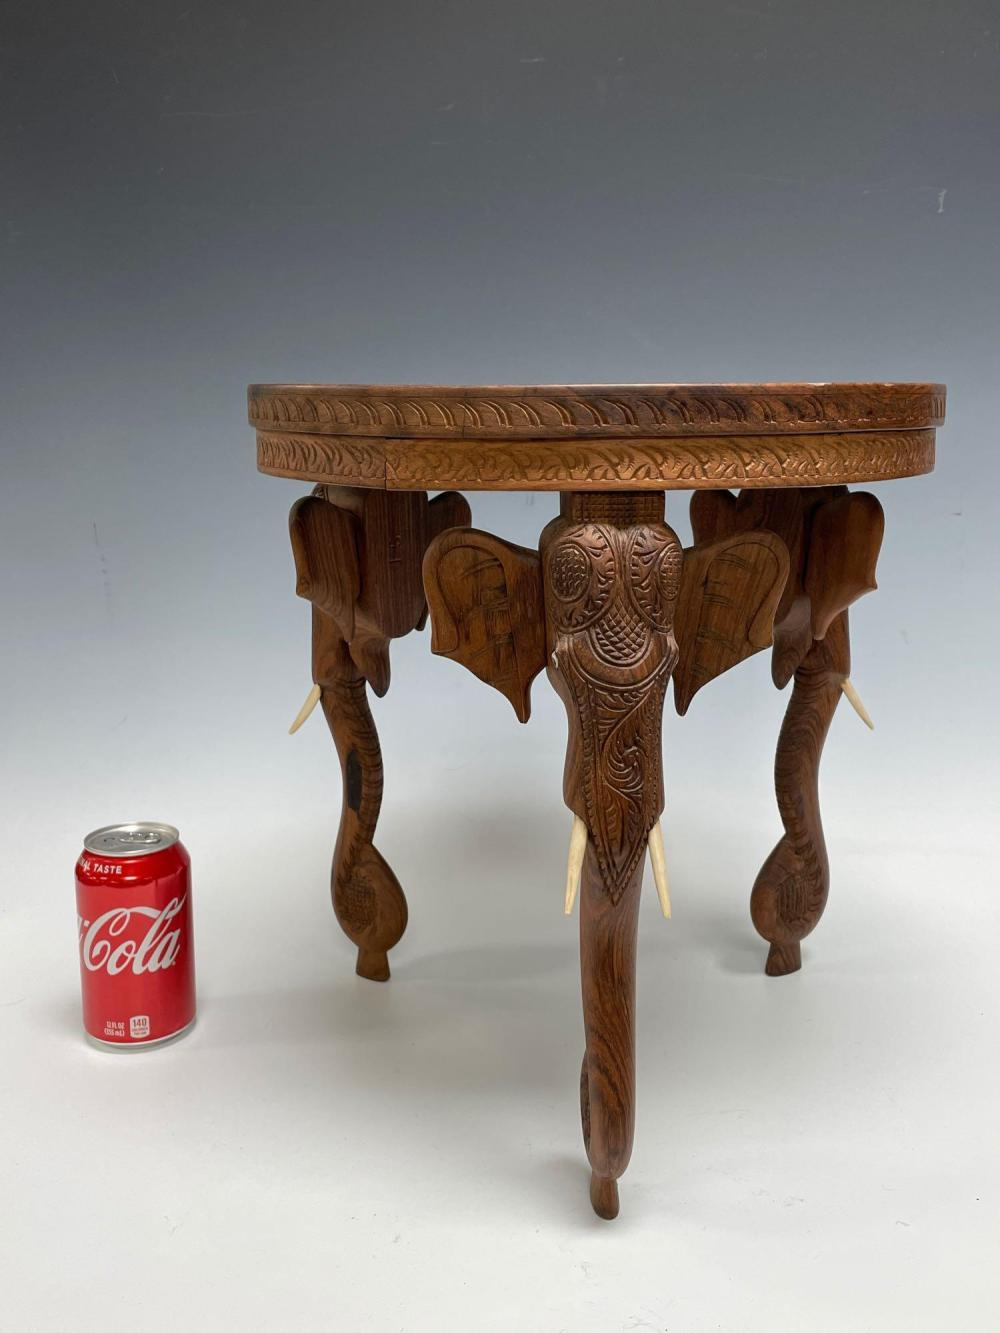 Ornate Anglo Indian Carved Wood Elephant Leg Pedestal / Stand